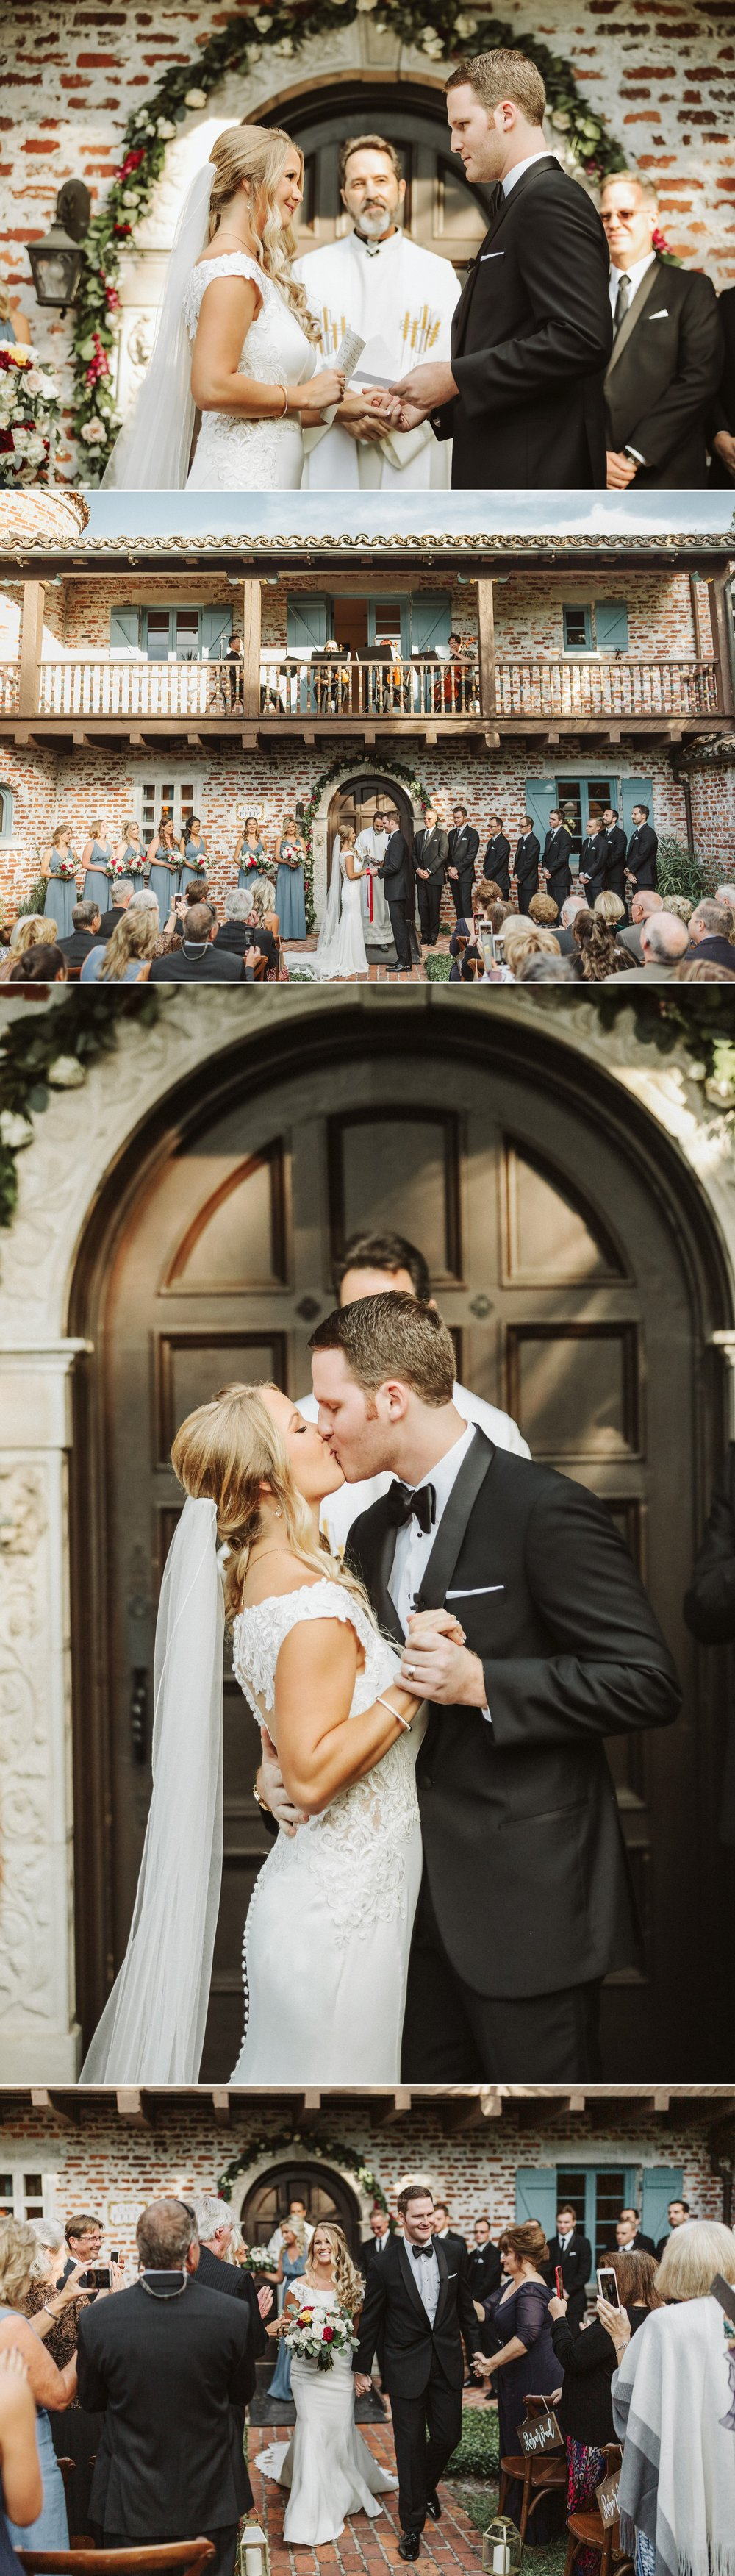 Casa Feliz Romantic Black Tie Wedding- Nick + Marissa- by Shaina DeCiryan Photography5.jpg